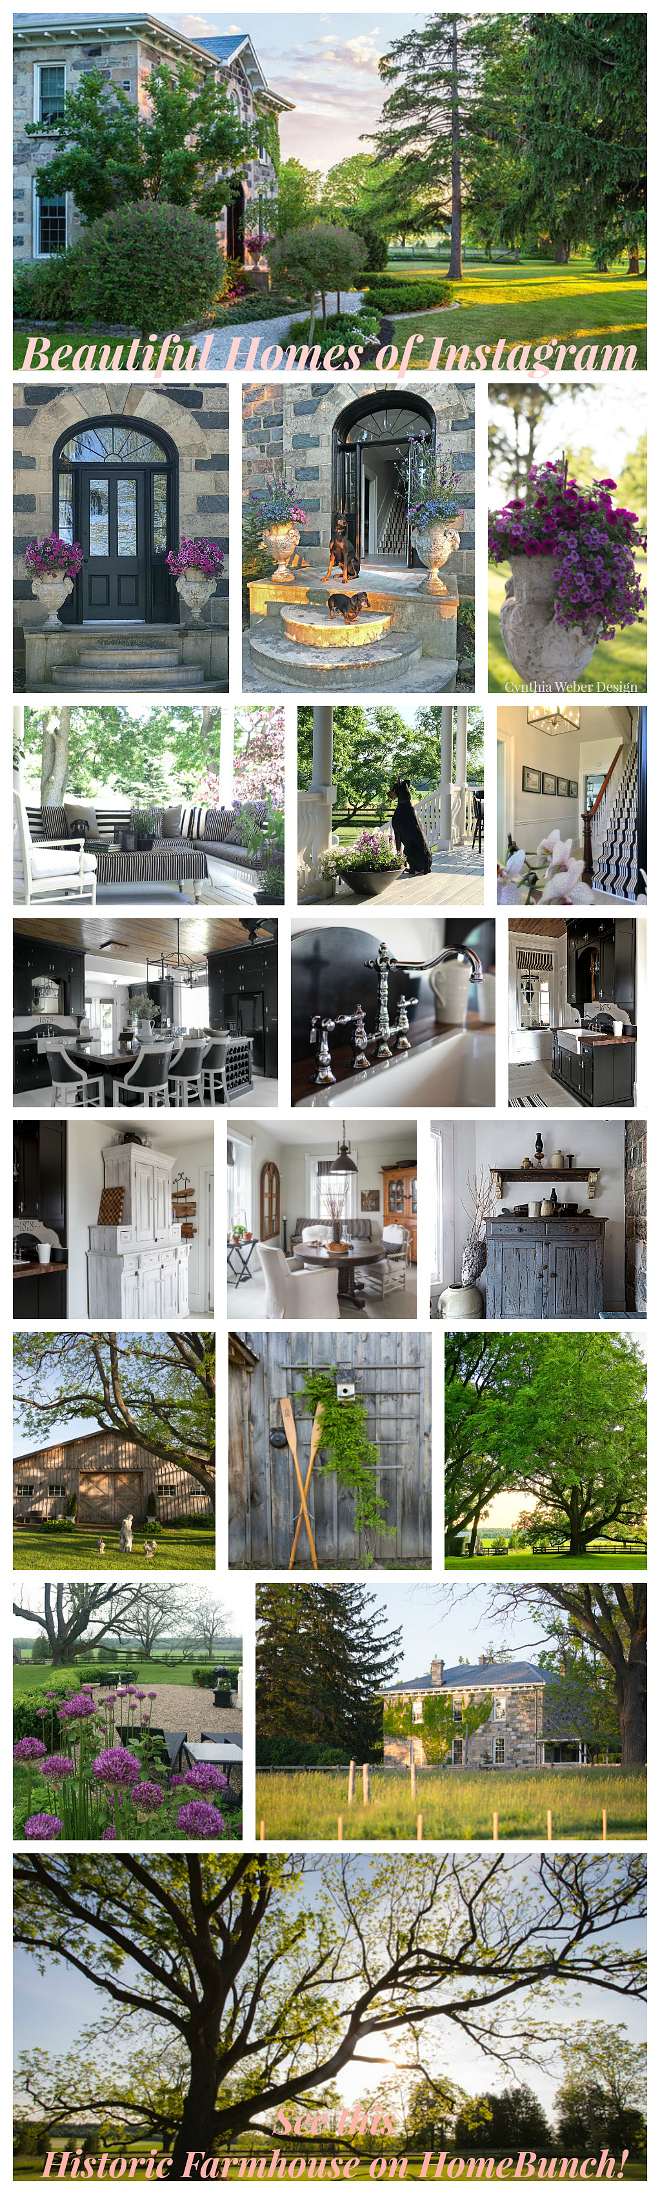 Historic Farmhouse Home Bunch's Beautiful Homes of Instagram Cynthia Weber Design @Cynthia_Weber_Design